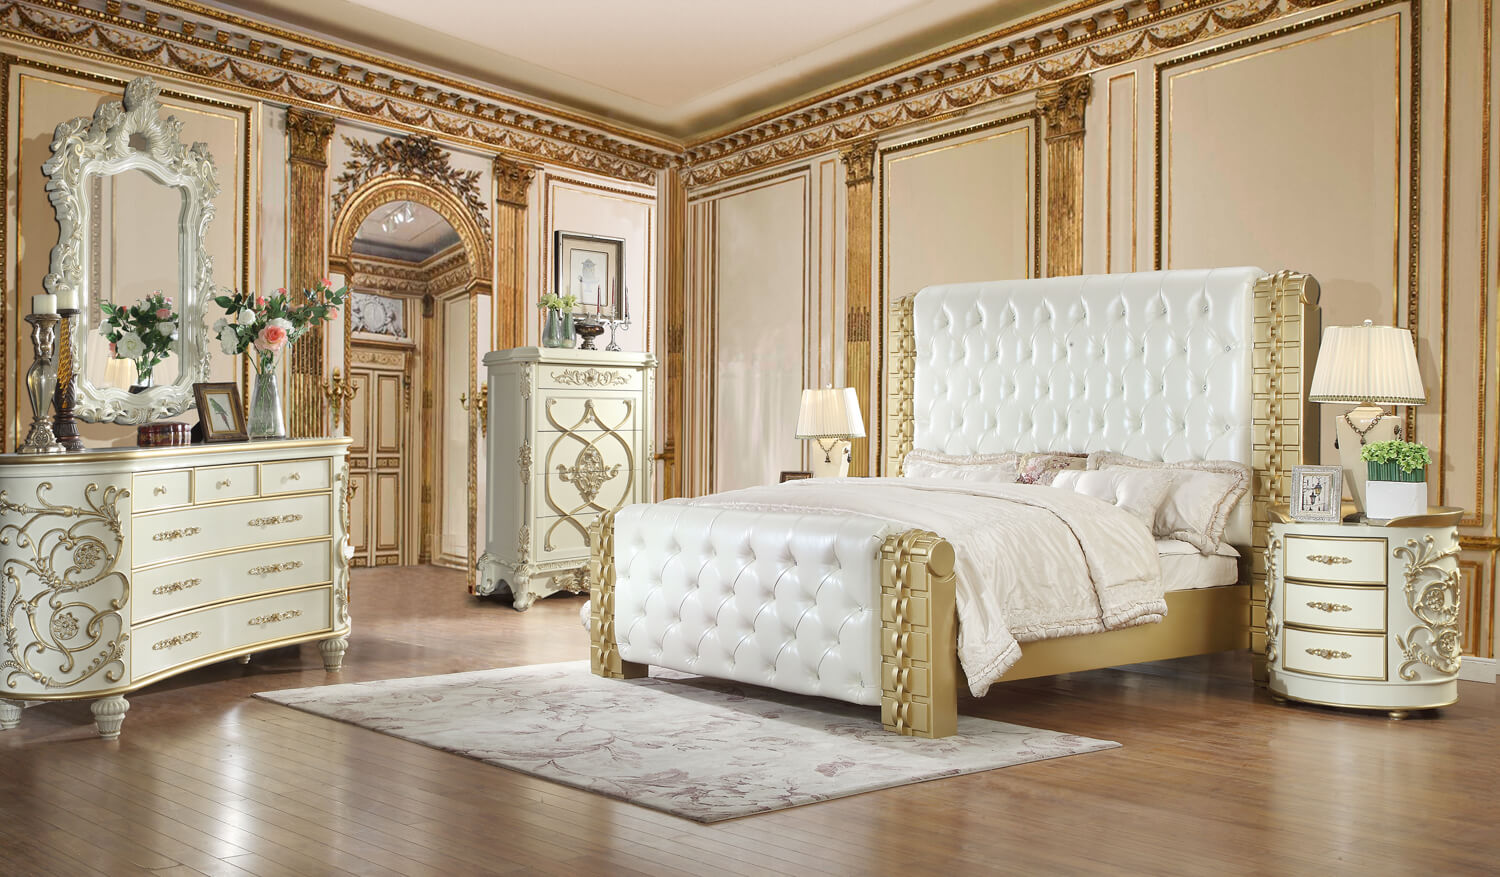 Gold and White King Bed Frame